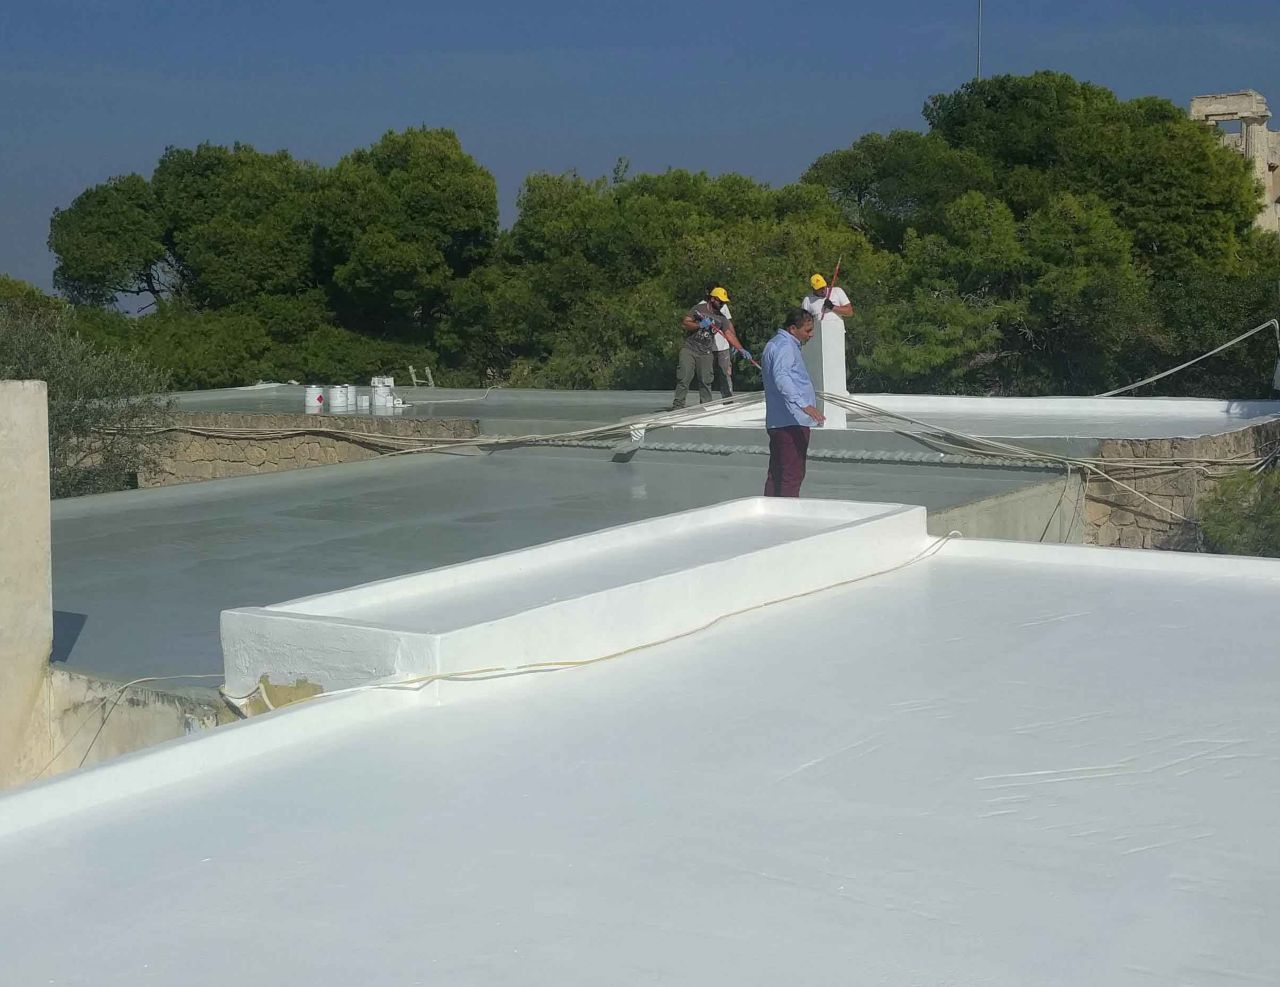 Sikalastic-701 applied on a cold roof in Greece